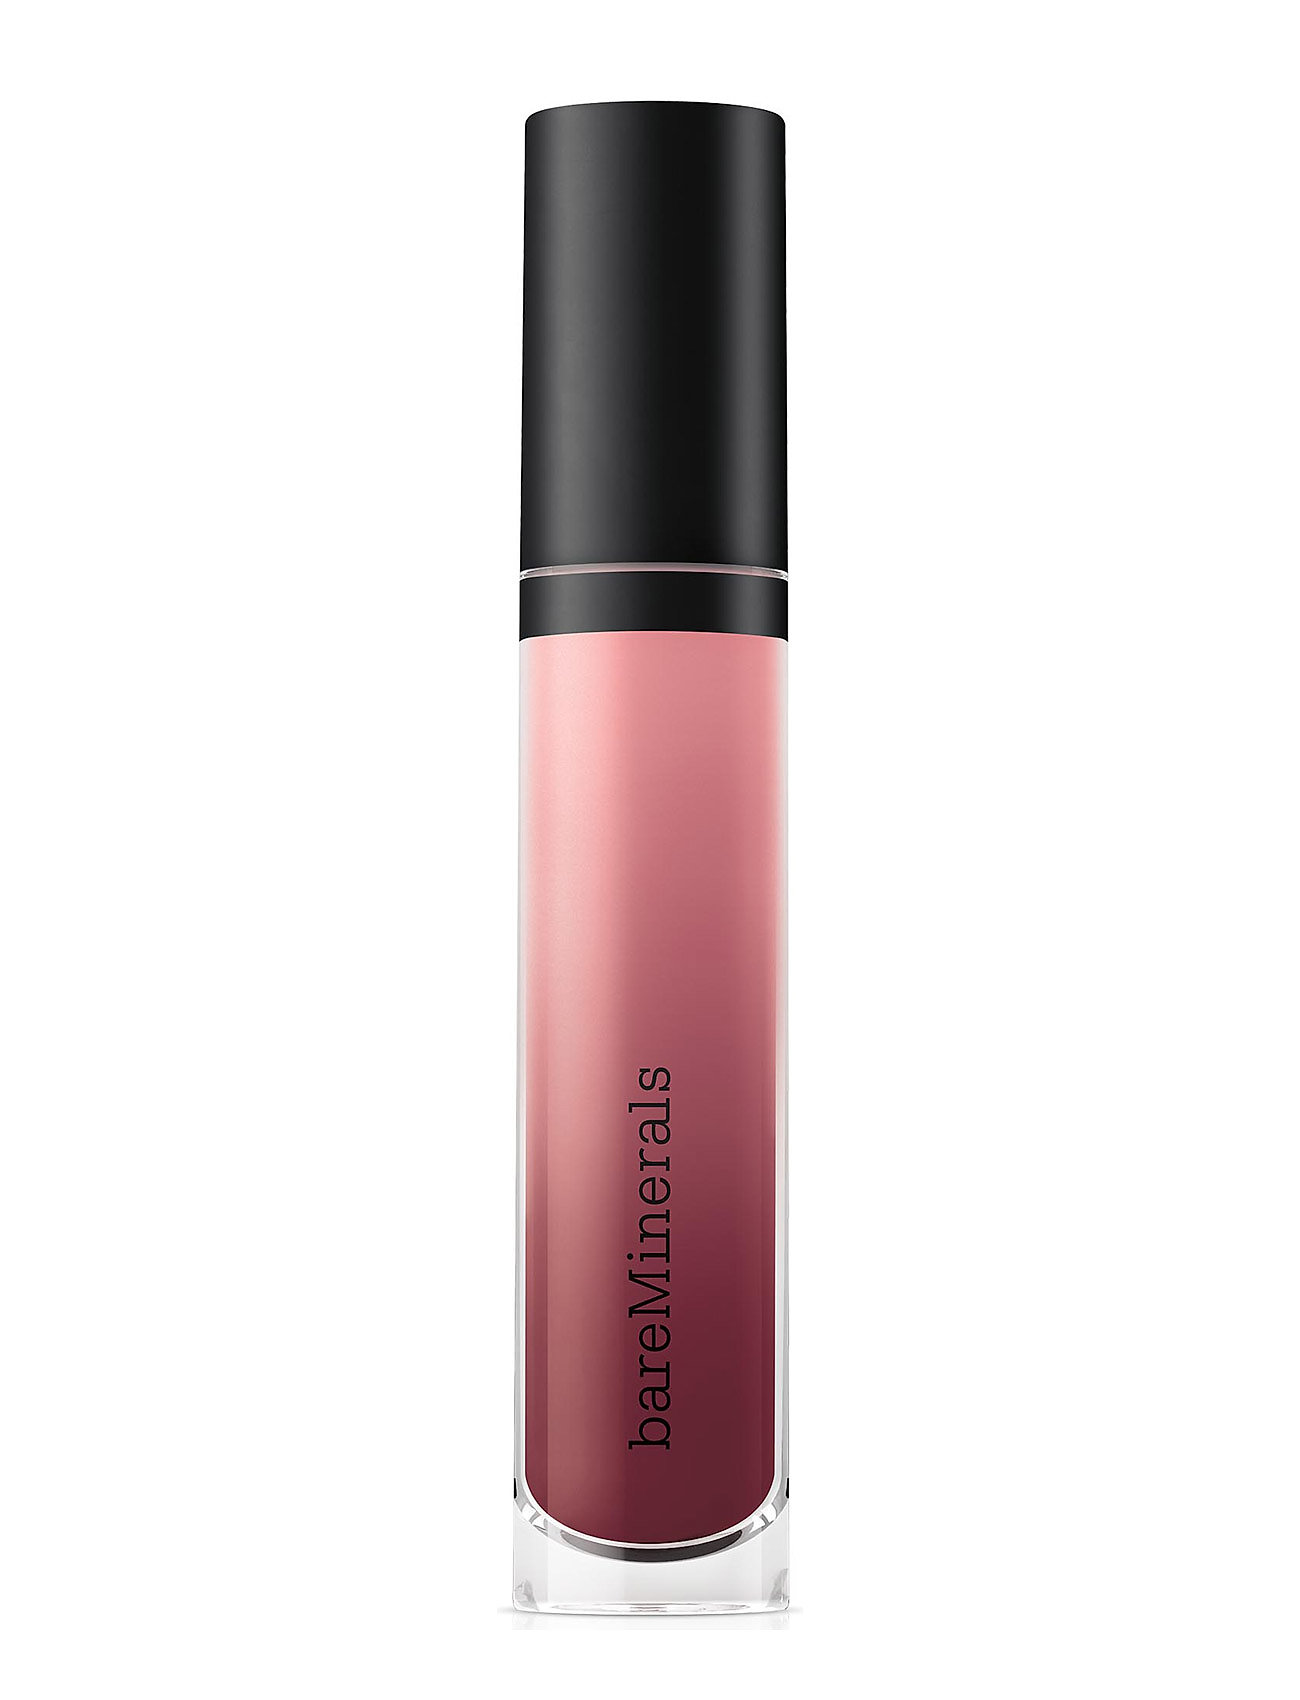 Image of Statement Matte Liquid Lipcolor Lipgloss Makeup Lilla BareMinerals (3067522089)